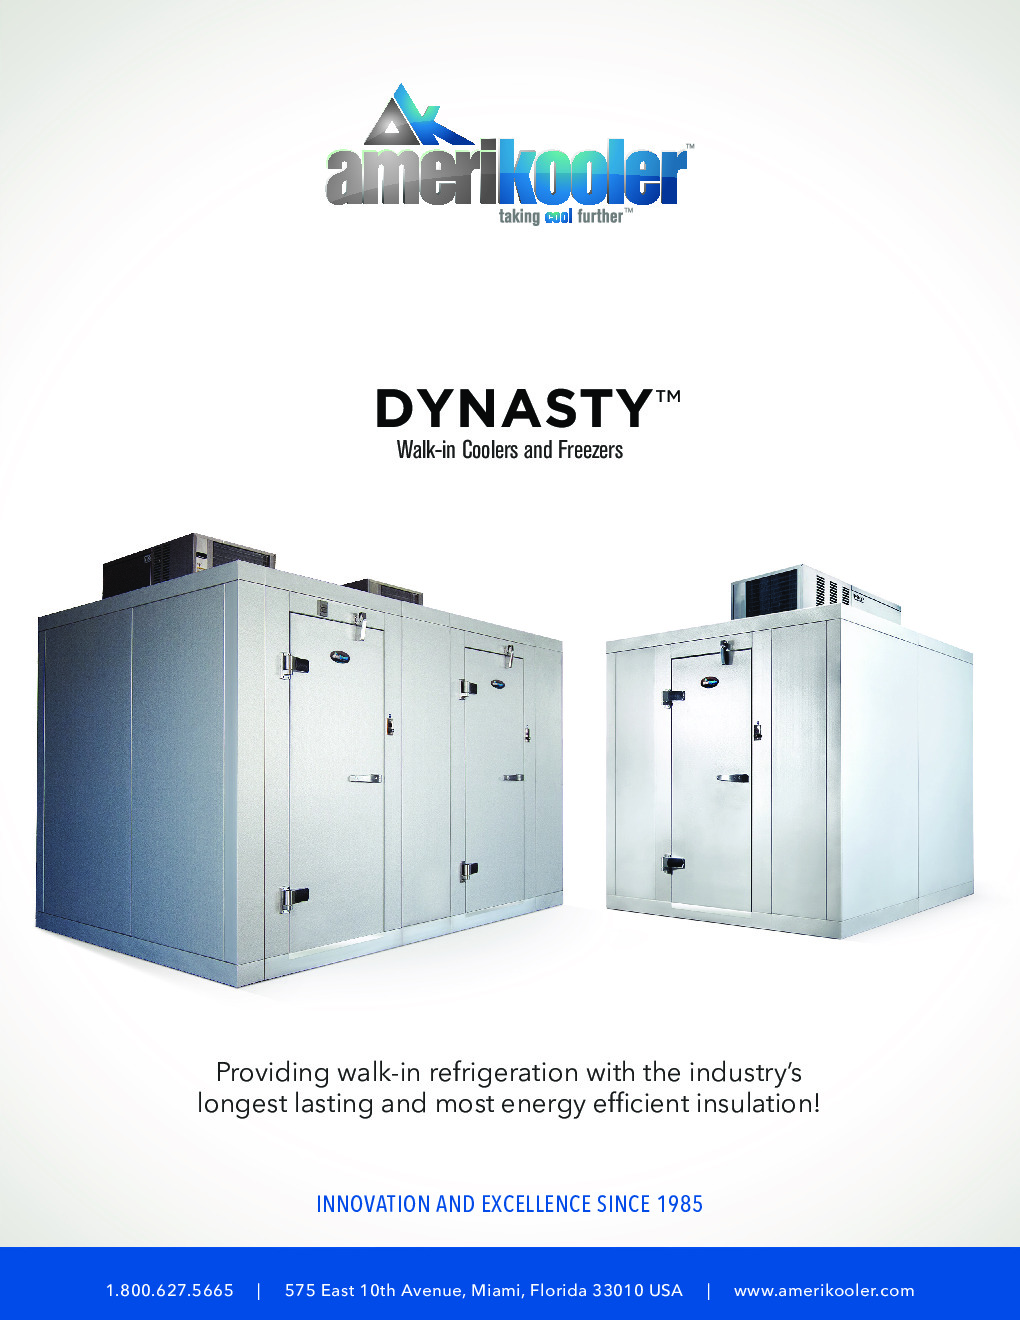 AmeriKooler DW061377F-4/9 Indoor 6' X 13' Walk-In, 9' L Cooler with Floor and 4' L Freezer, Box Only